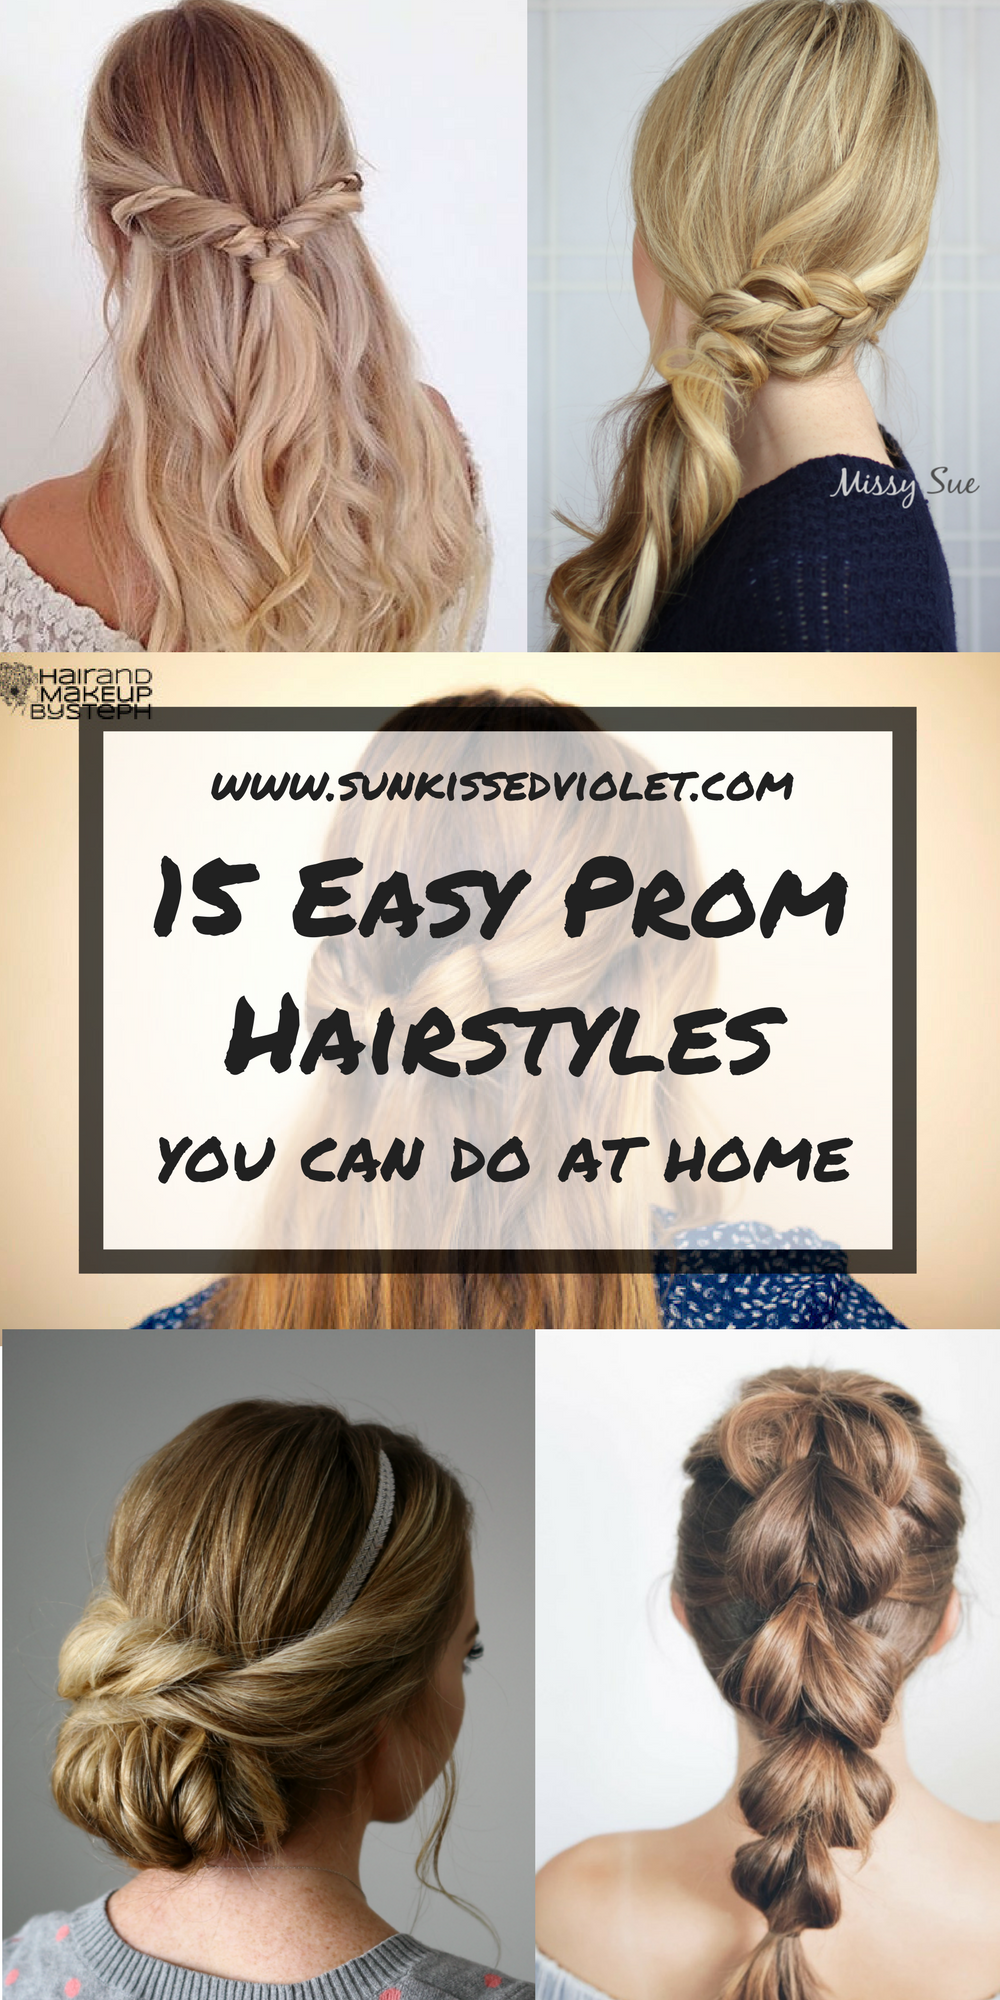 15 Easy Prom Hairstyles For Long Hair You Can Diy At Home Detailed Step By Step Tutorial Sun Kissed Violet Hair Styles Prom Hairstyles For Long Hair Simple Prom Hair